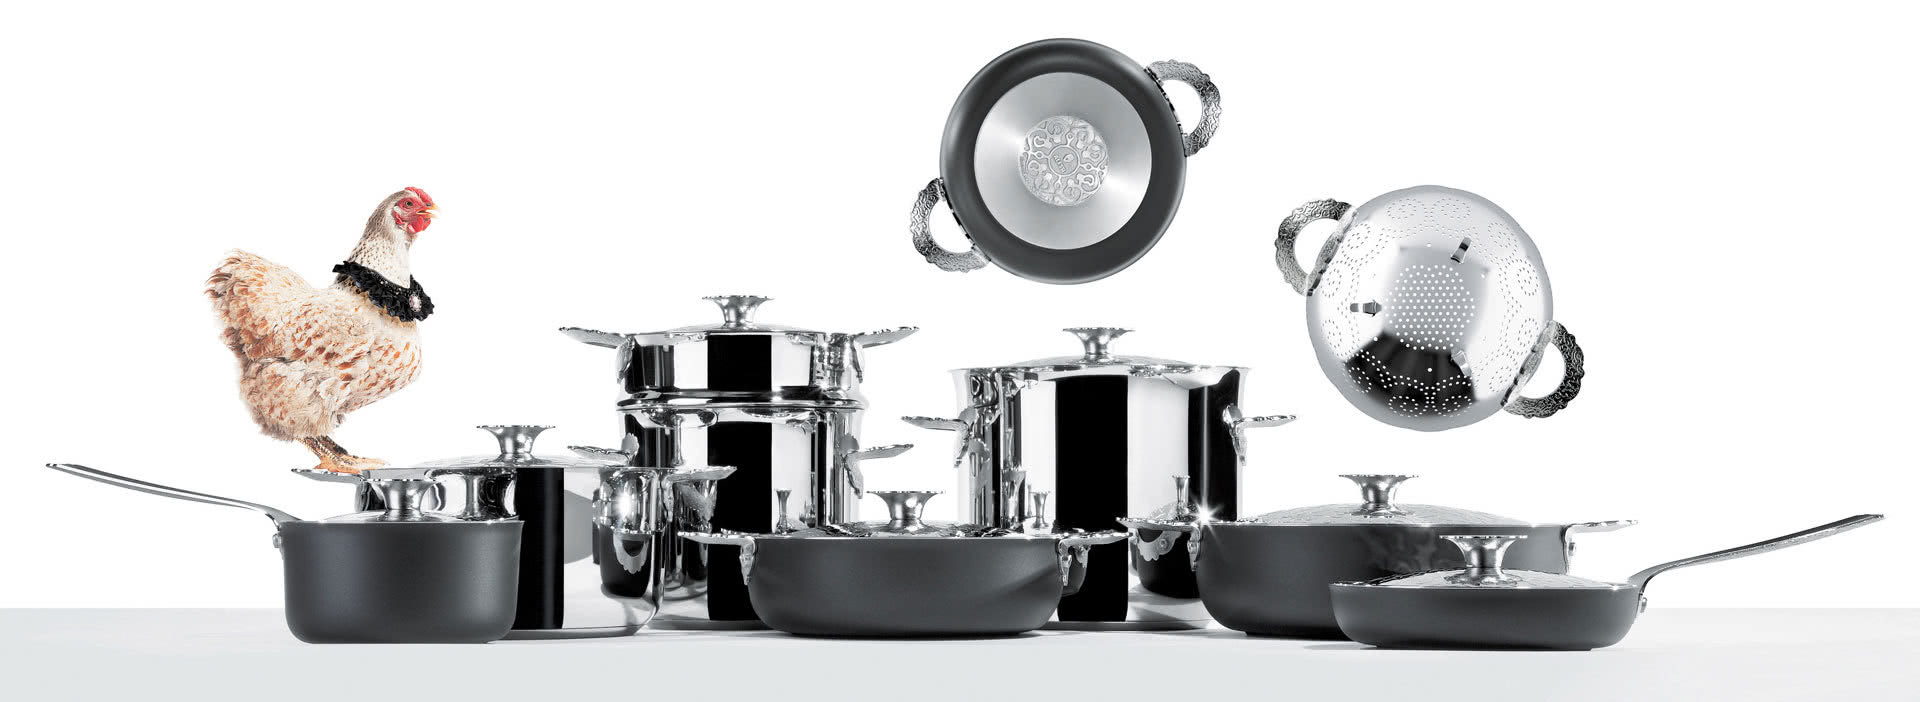 Alessi_-_Dressed_pots_and_pans_-_1.jpg